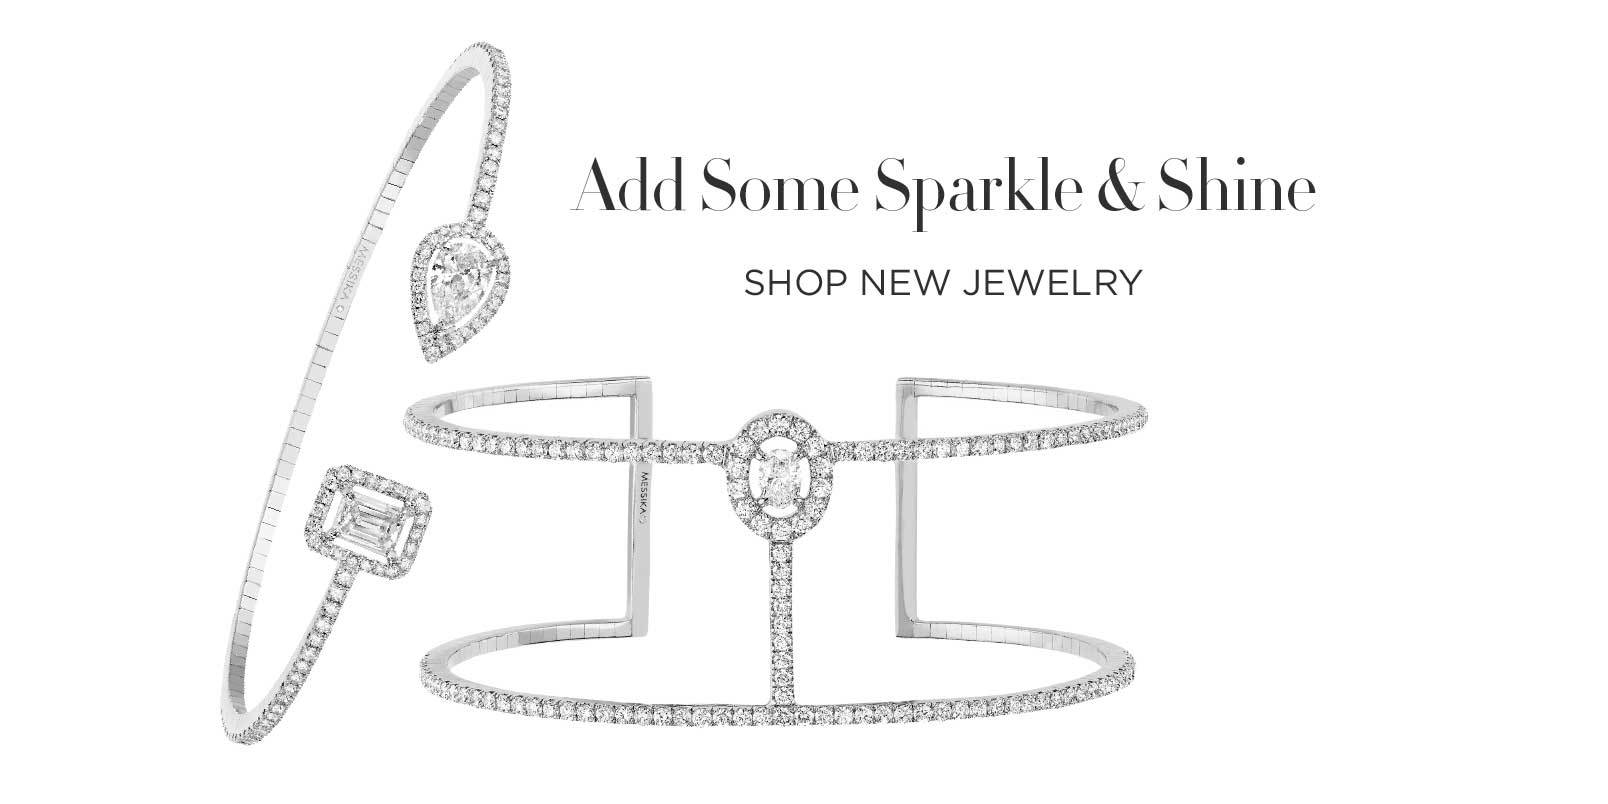 Add Some Sparkle & Shine